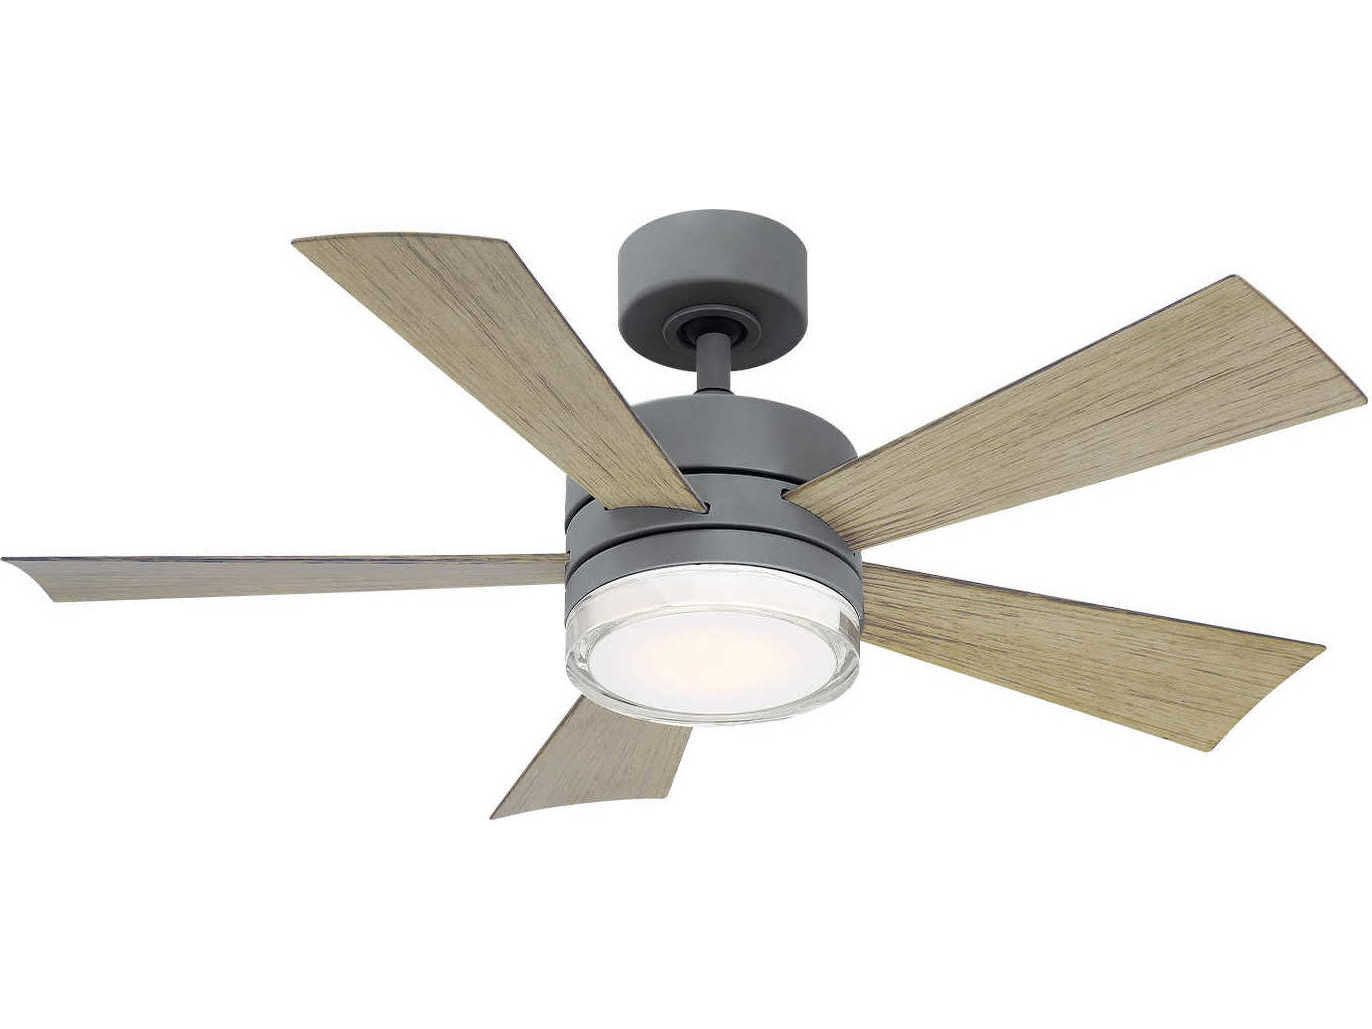 Royal Pacific Sunset 42 In Brushed Pewter Indoor Outdoor Downrod Ceiling Fan 5 Blade Lowes Com Ceiling Fan Outdoor Ceiling Fans Ceiling Fan Design